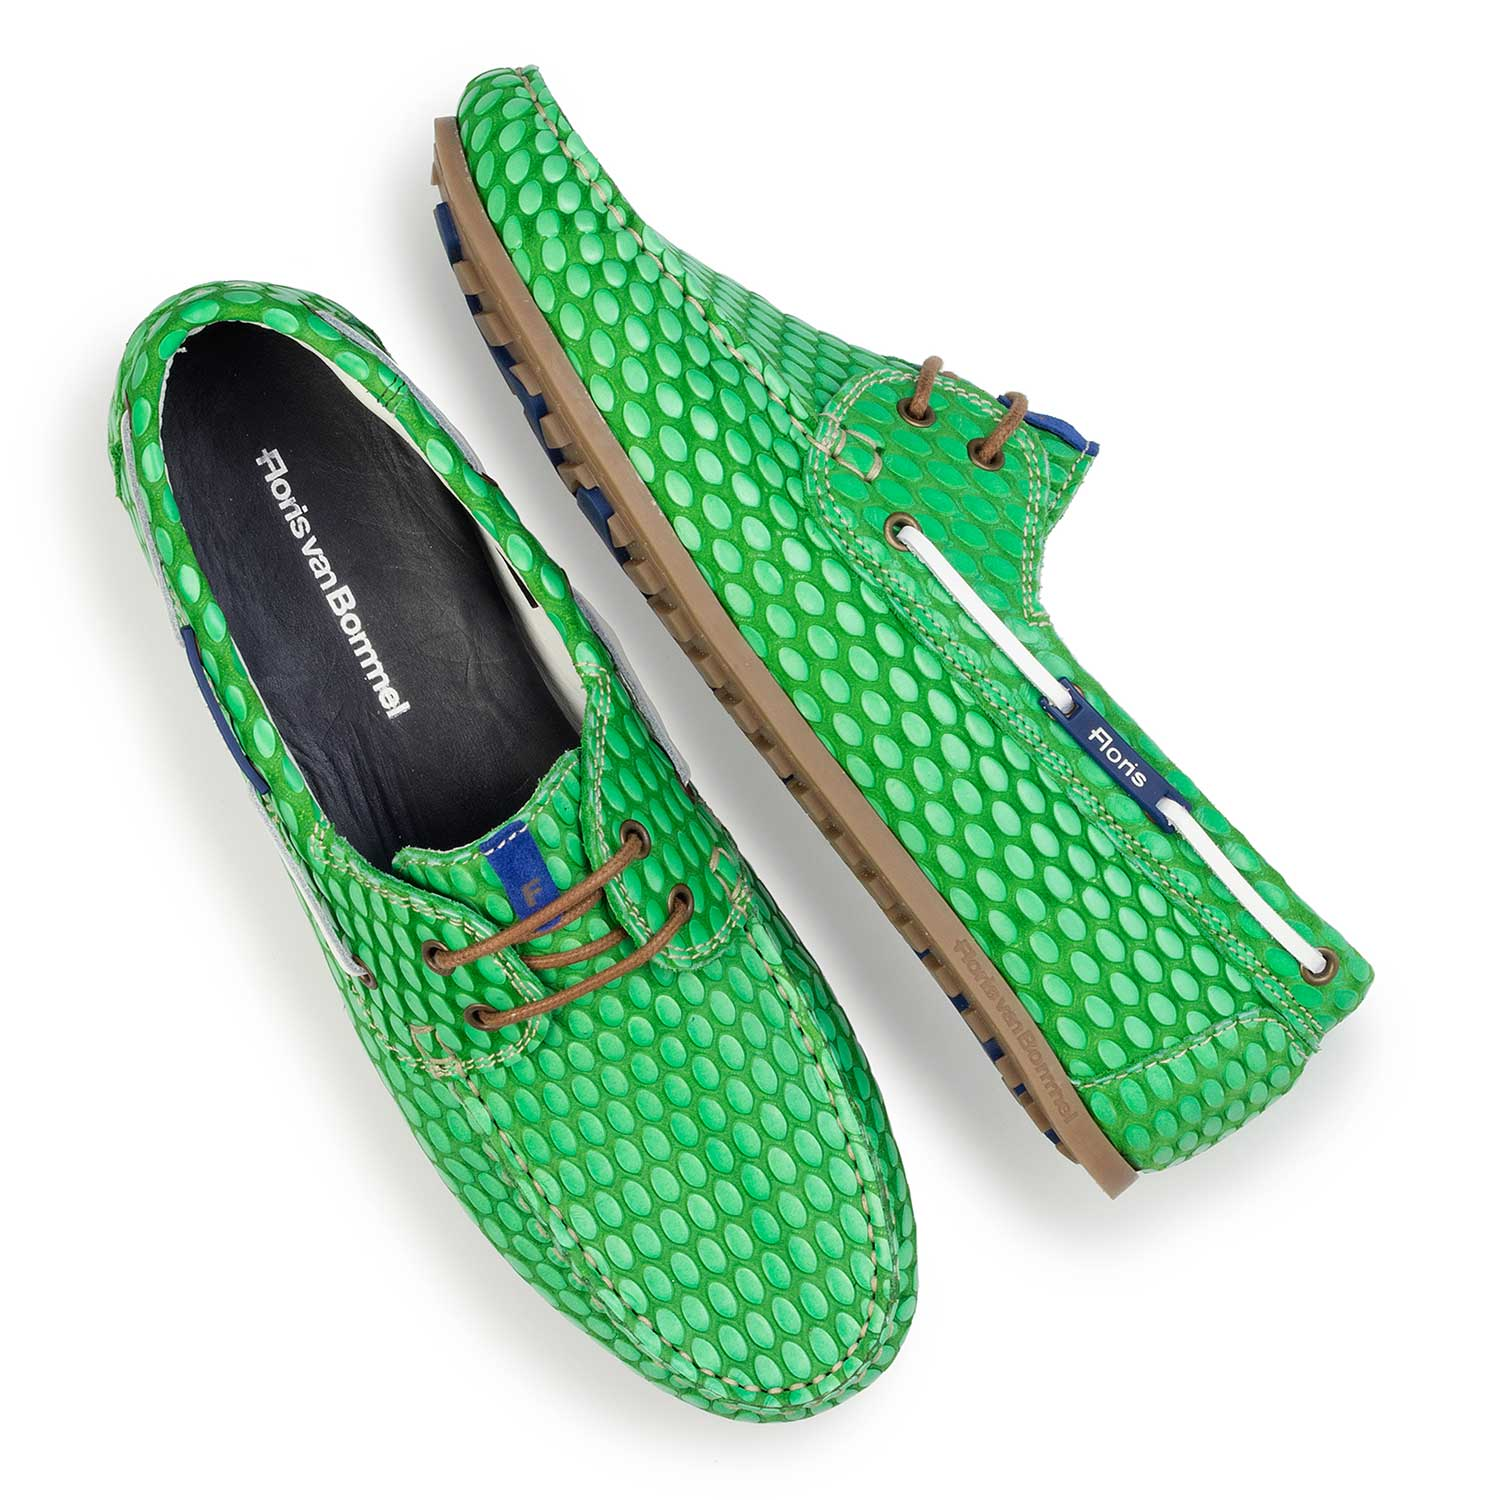 15055/00 - Green, printed leather boat shoe